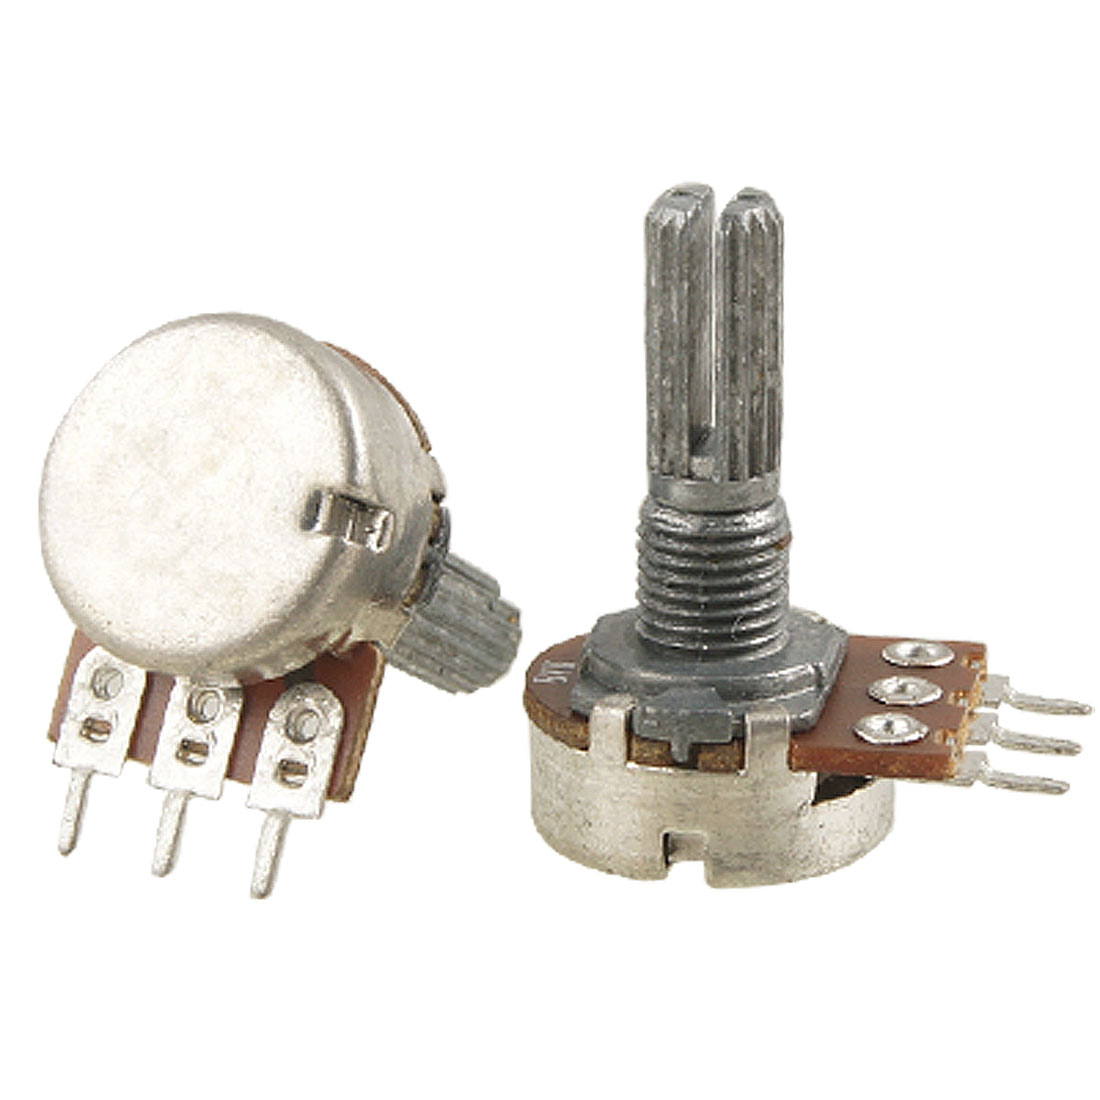 2 Pcs B1K 1K ohm Single Linear Taper Ratory Potentiometers